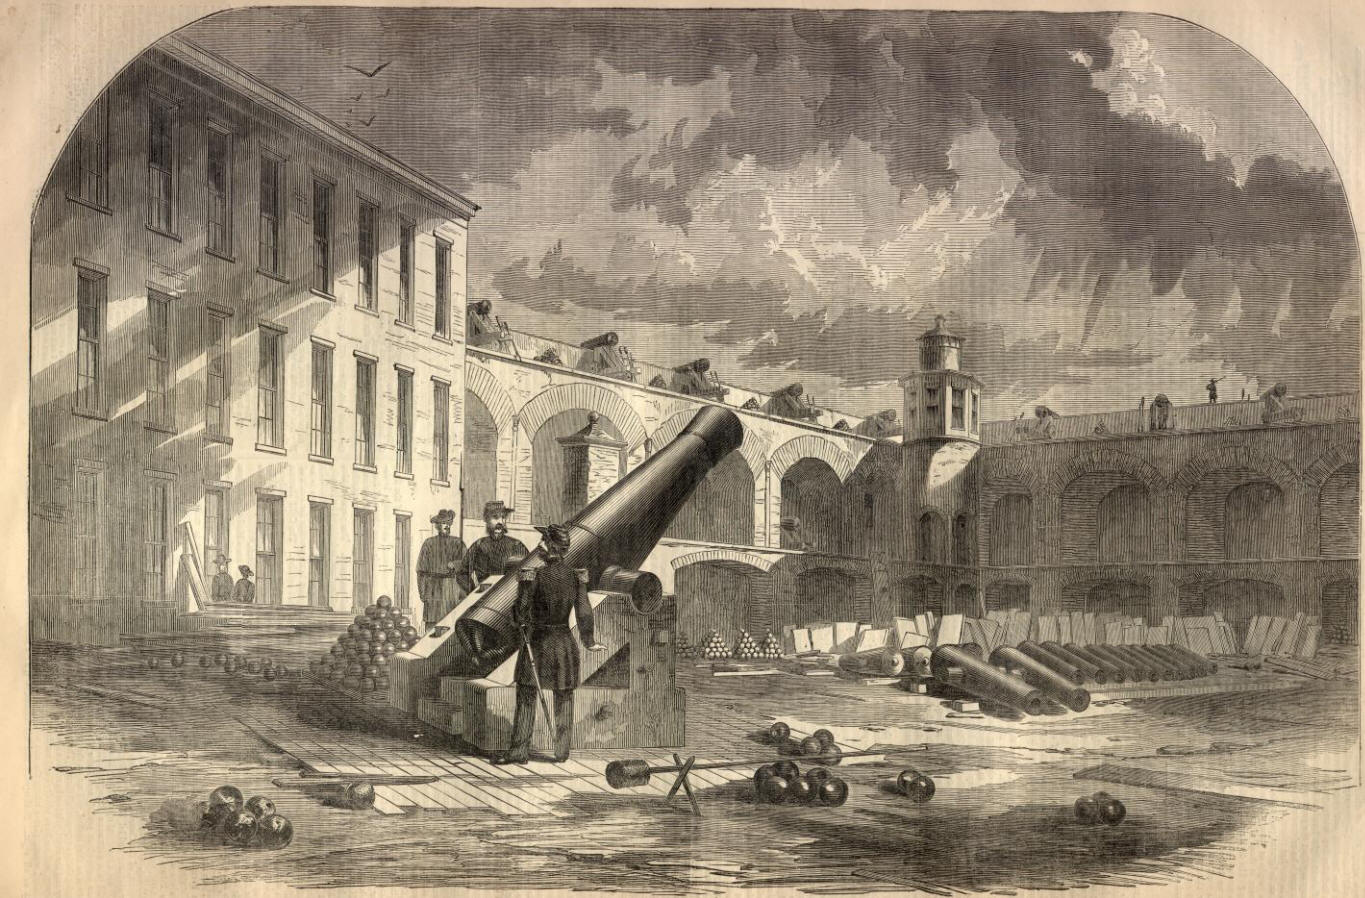 a history of the fort sumter battle during the civil war Battle of fort sumter: the battle of fort sumter was the opening engagement of the american civil war.